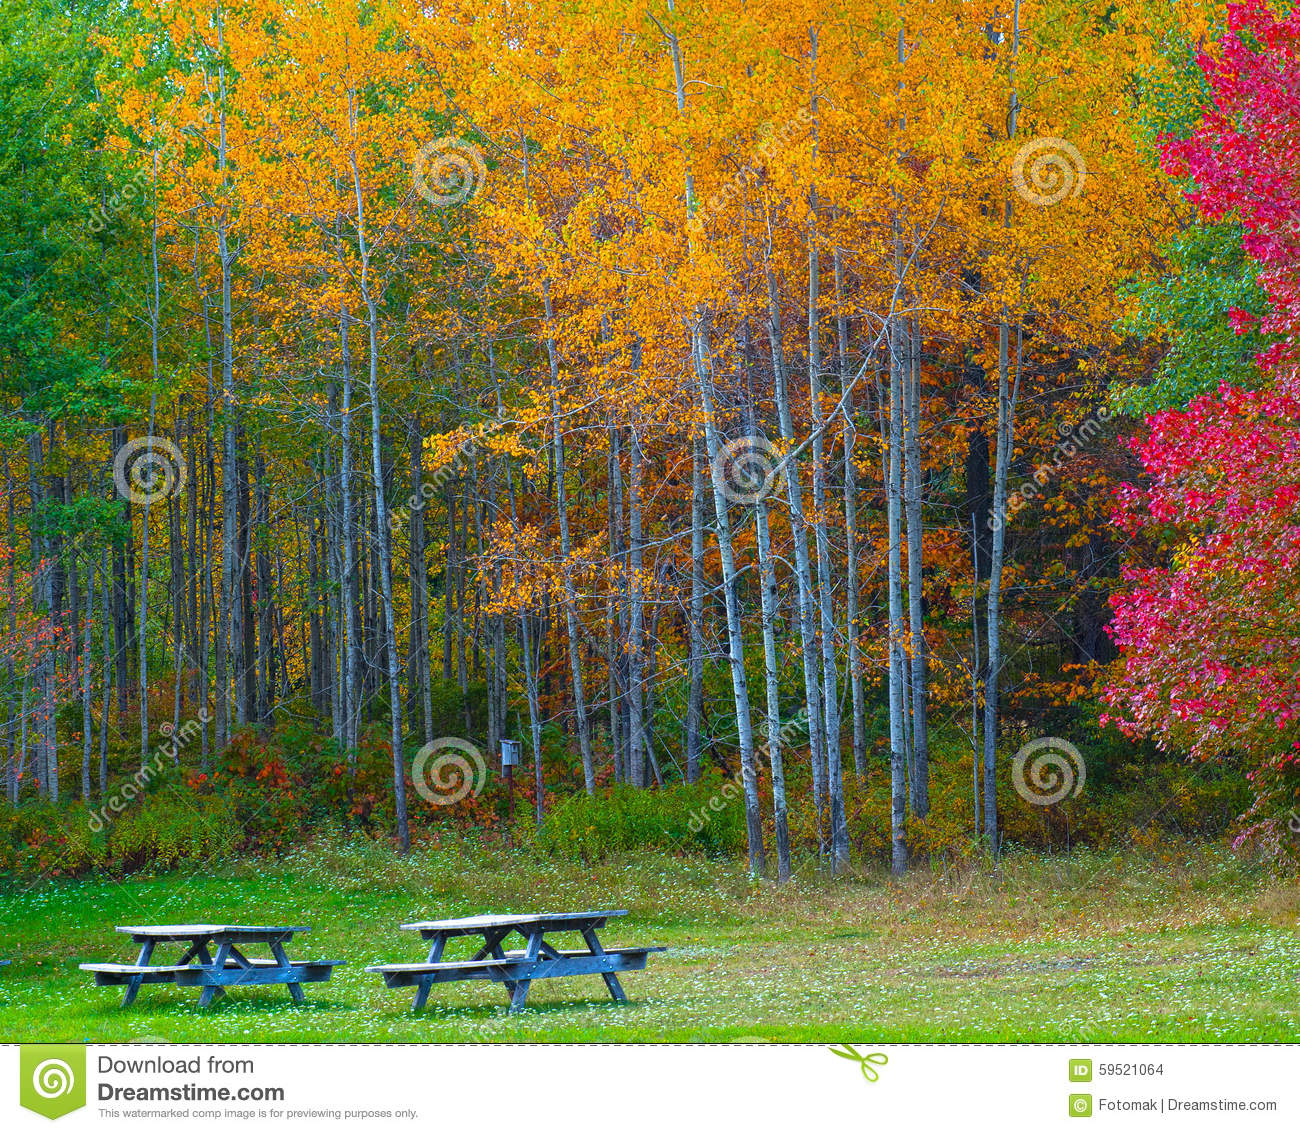 Nature landscape, Trees changing colors during autumn in a forest park